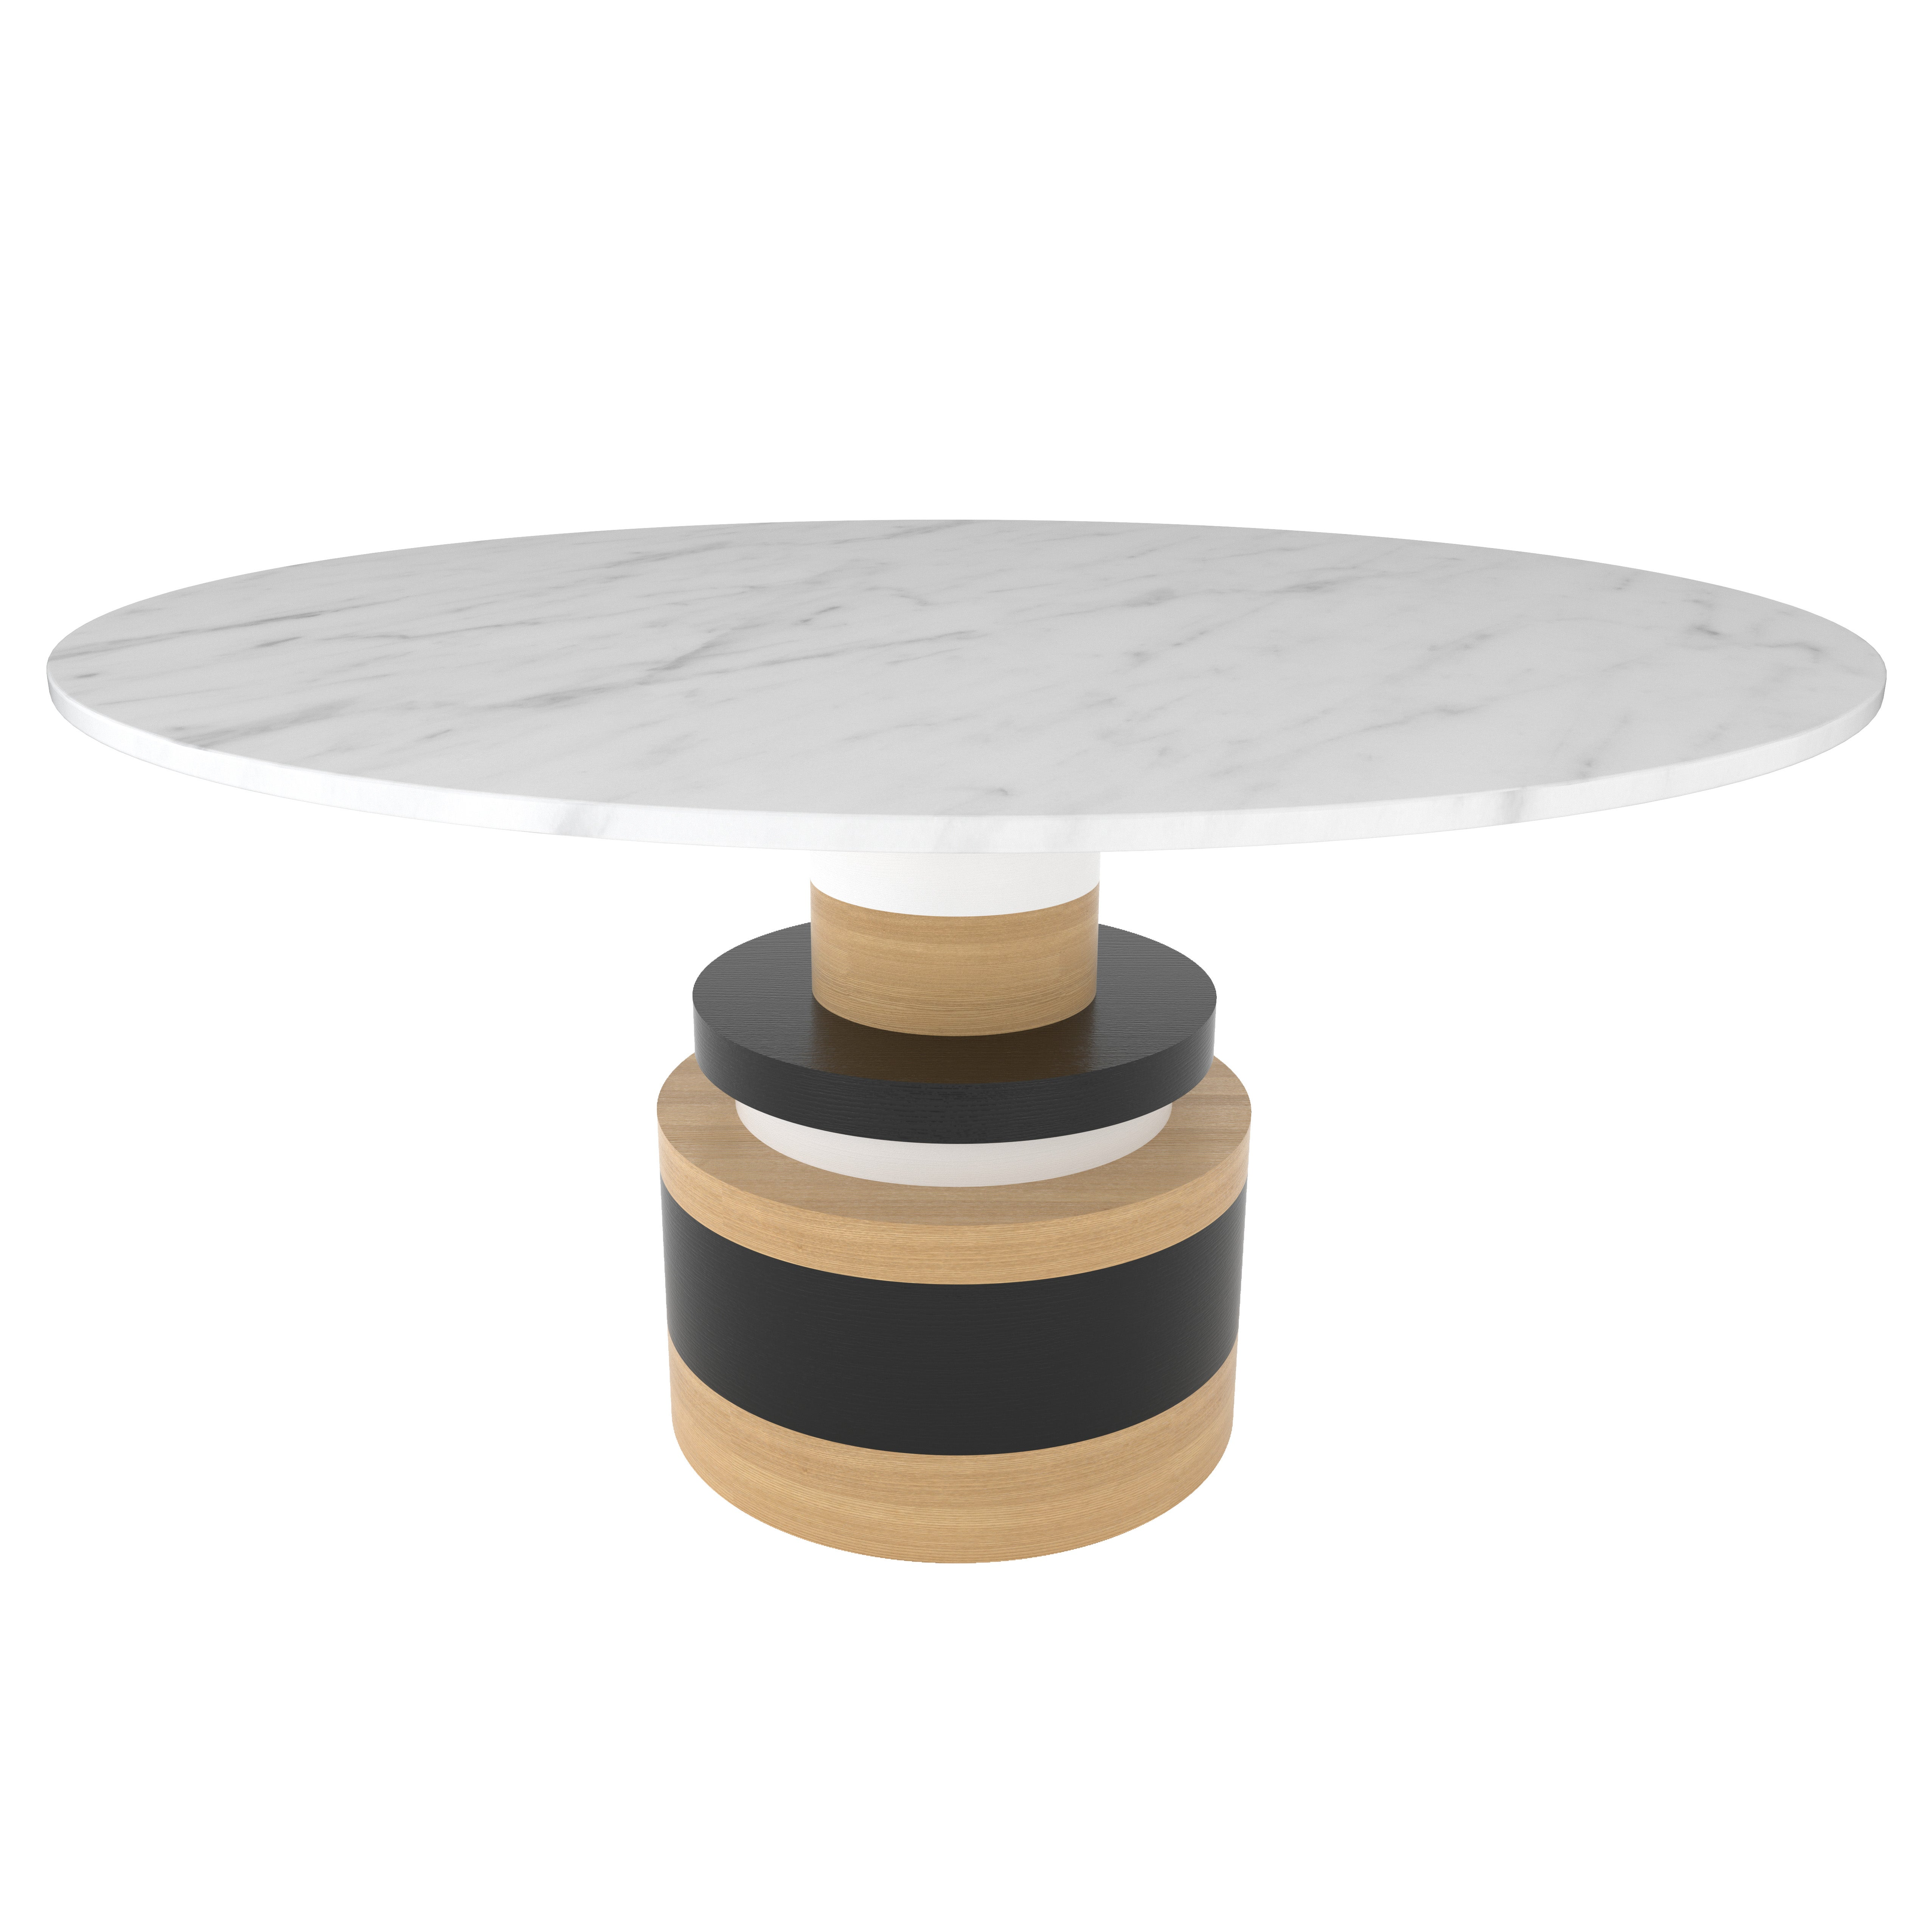 Customizable Sass Dining Table from Souda, Large, Marble Top